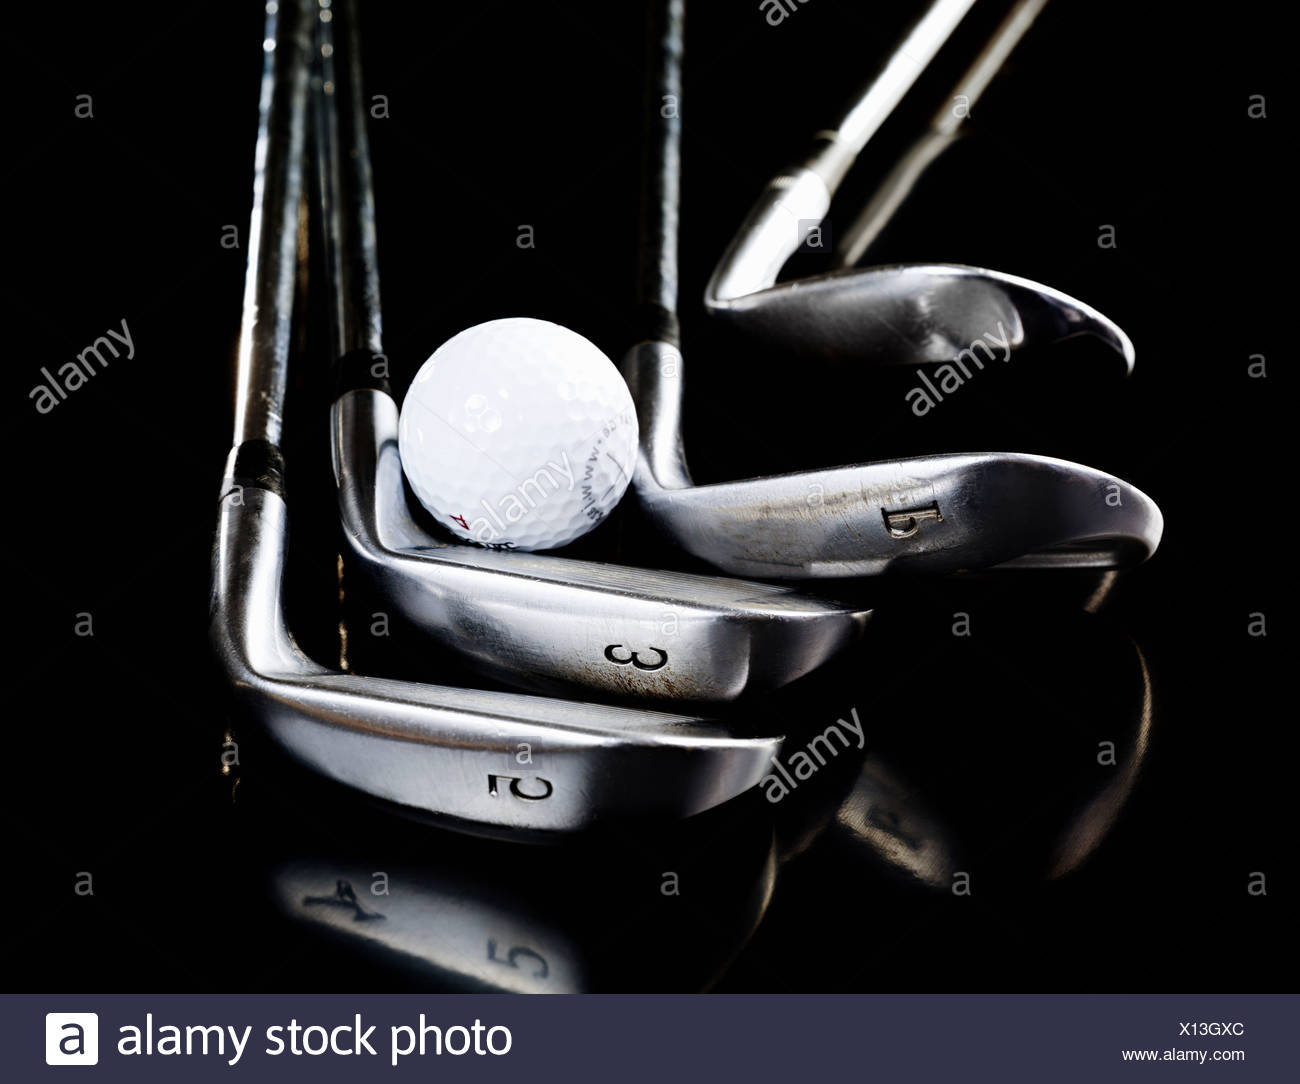 Golf clubs and ball - Stock Image